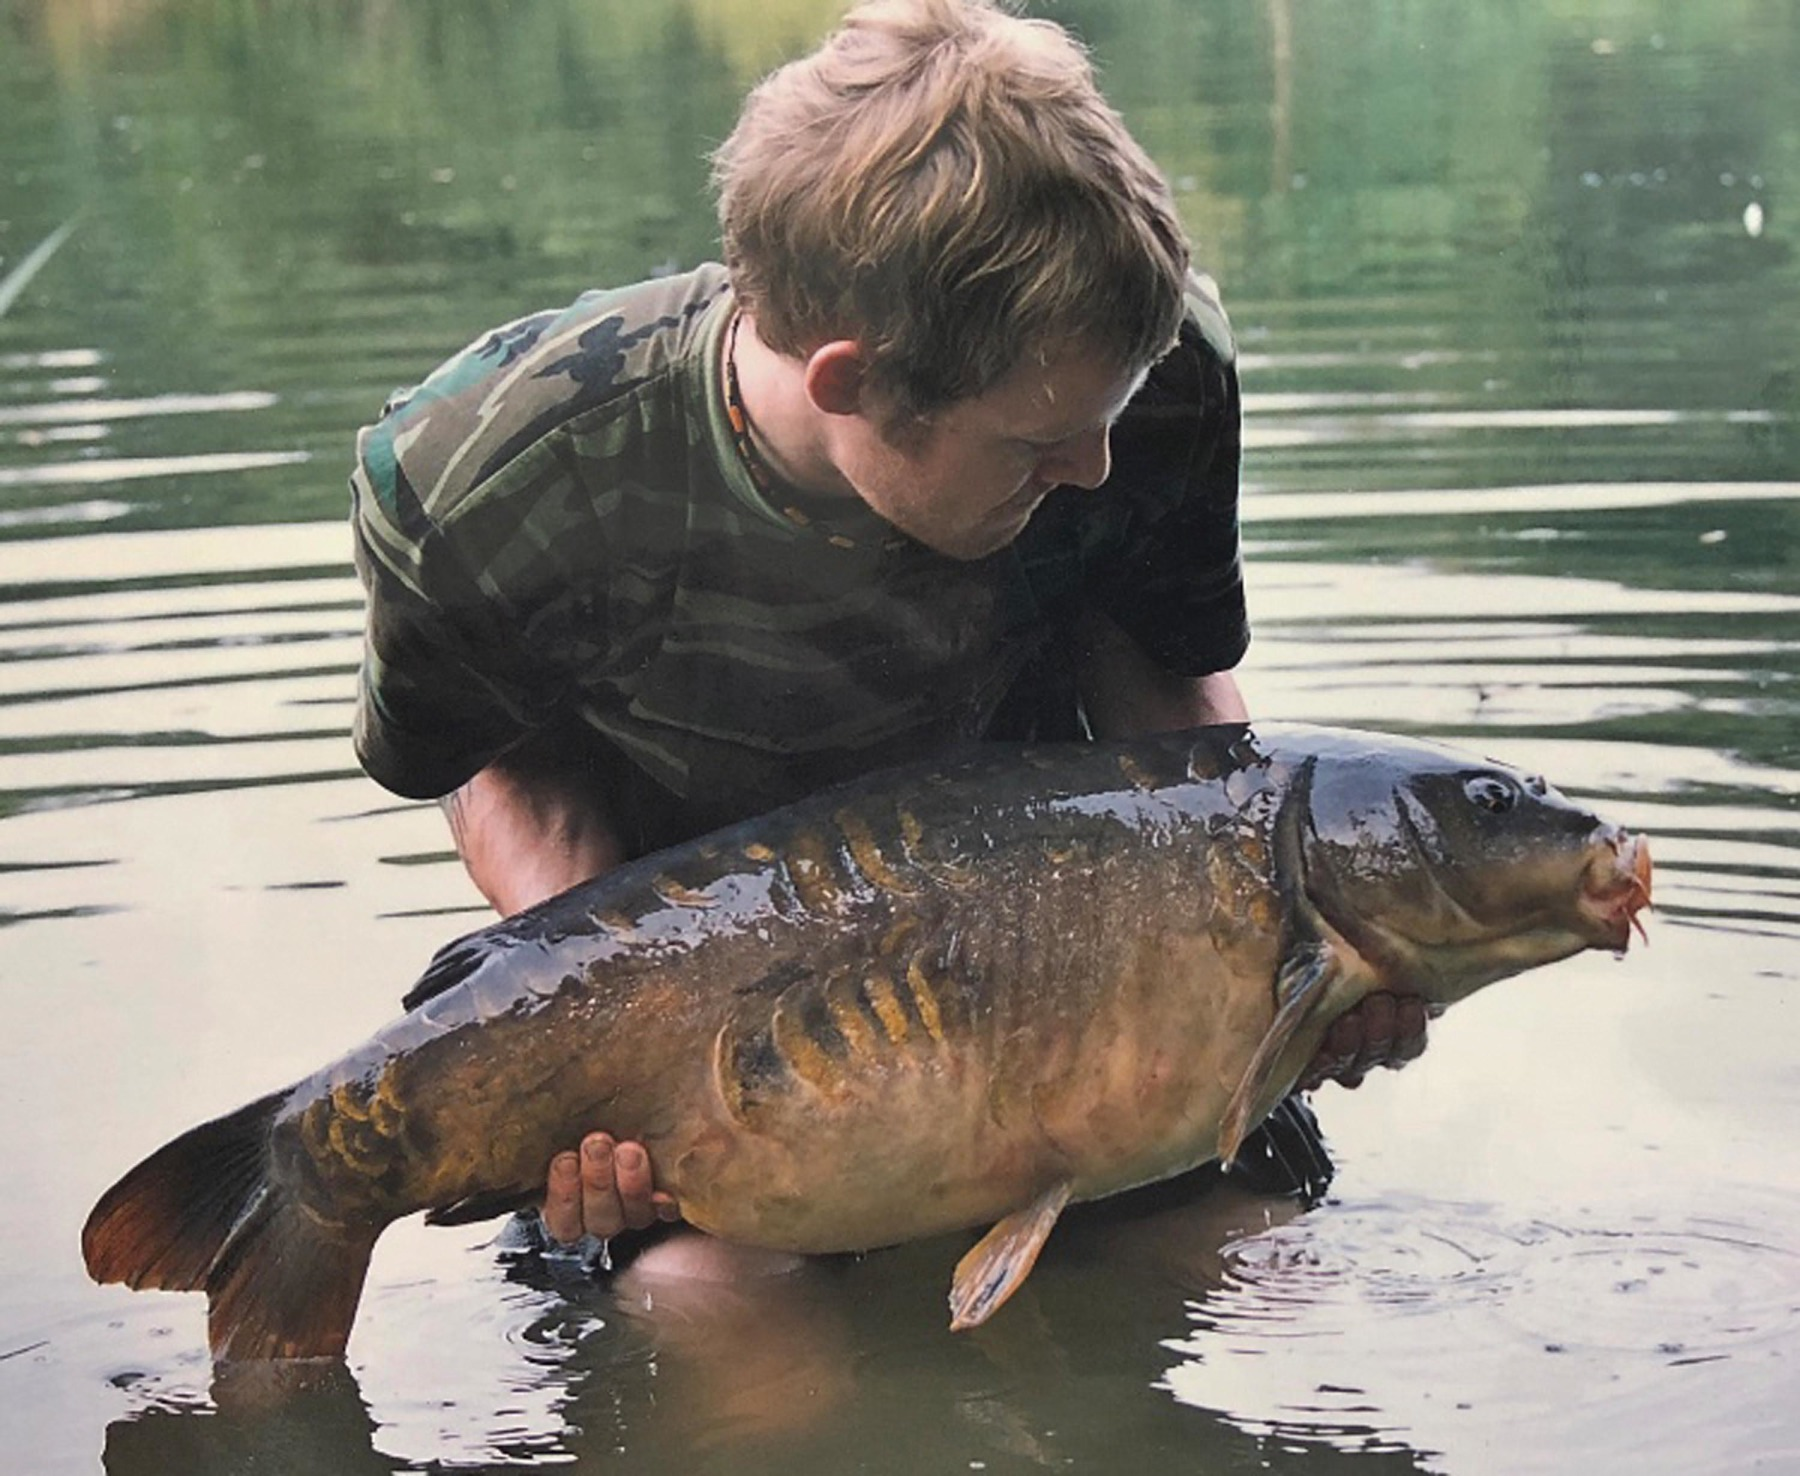 Three Up Five Down from Burghfield, landed on the original Fox Series 5 hook despite swimming between two islands into a completely different bay!